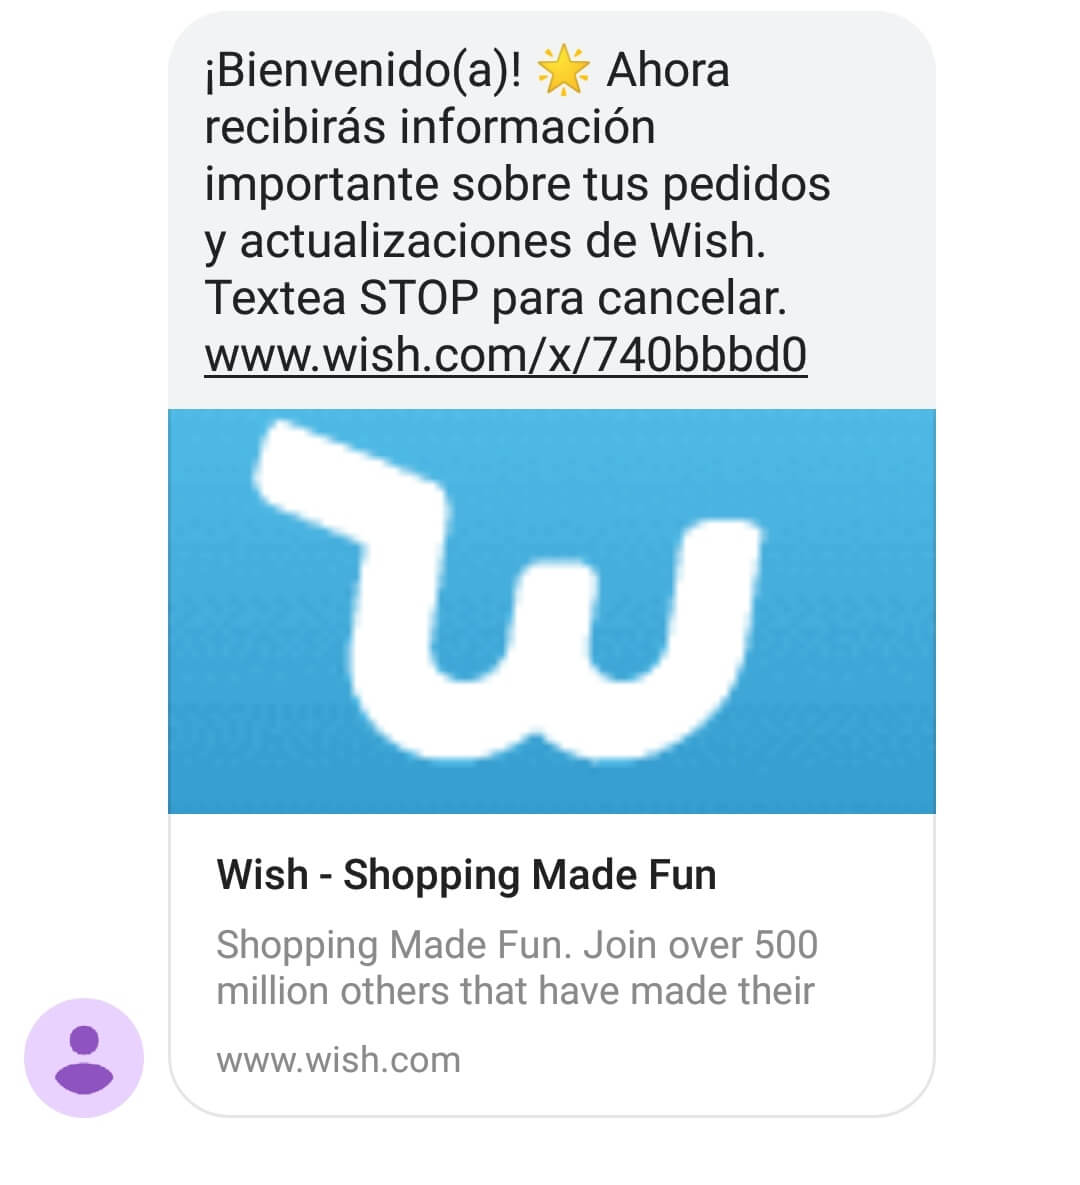 Marketing por sms. Ejemplo de Wish.